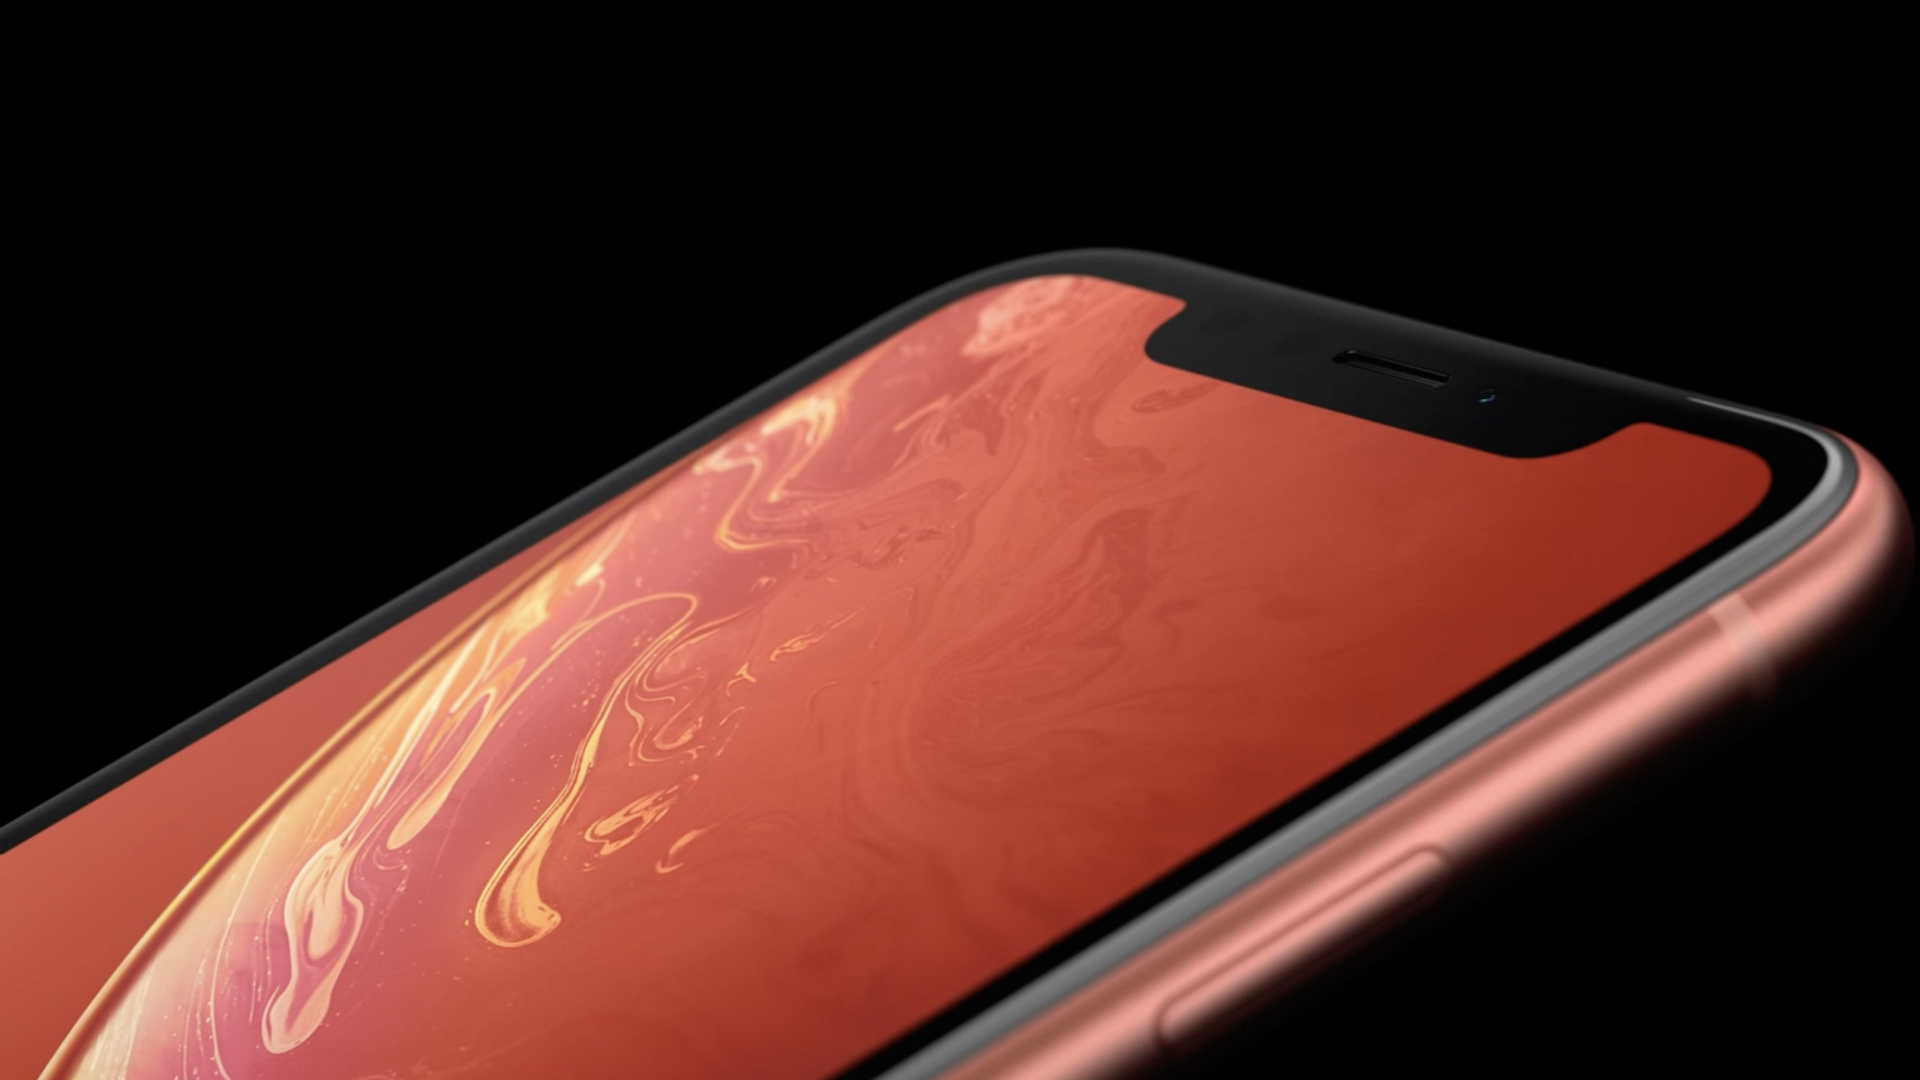 Apple Iphone Xr Review A Great Balance Of Polish Features And Price T3